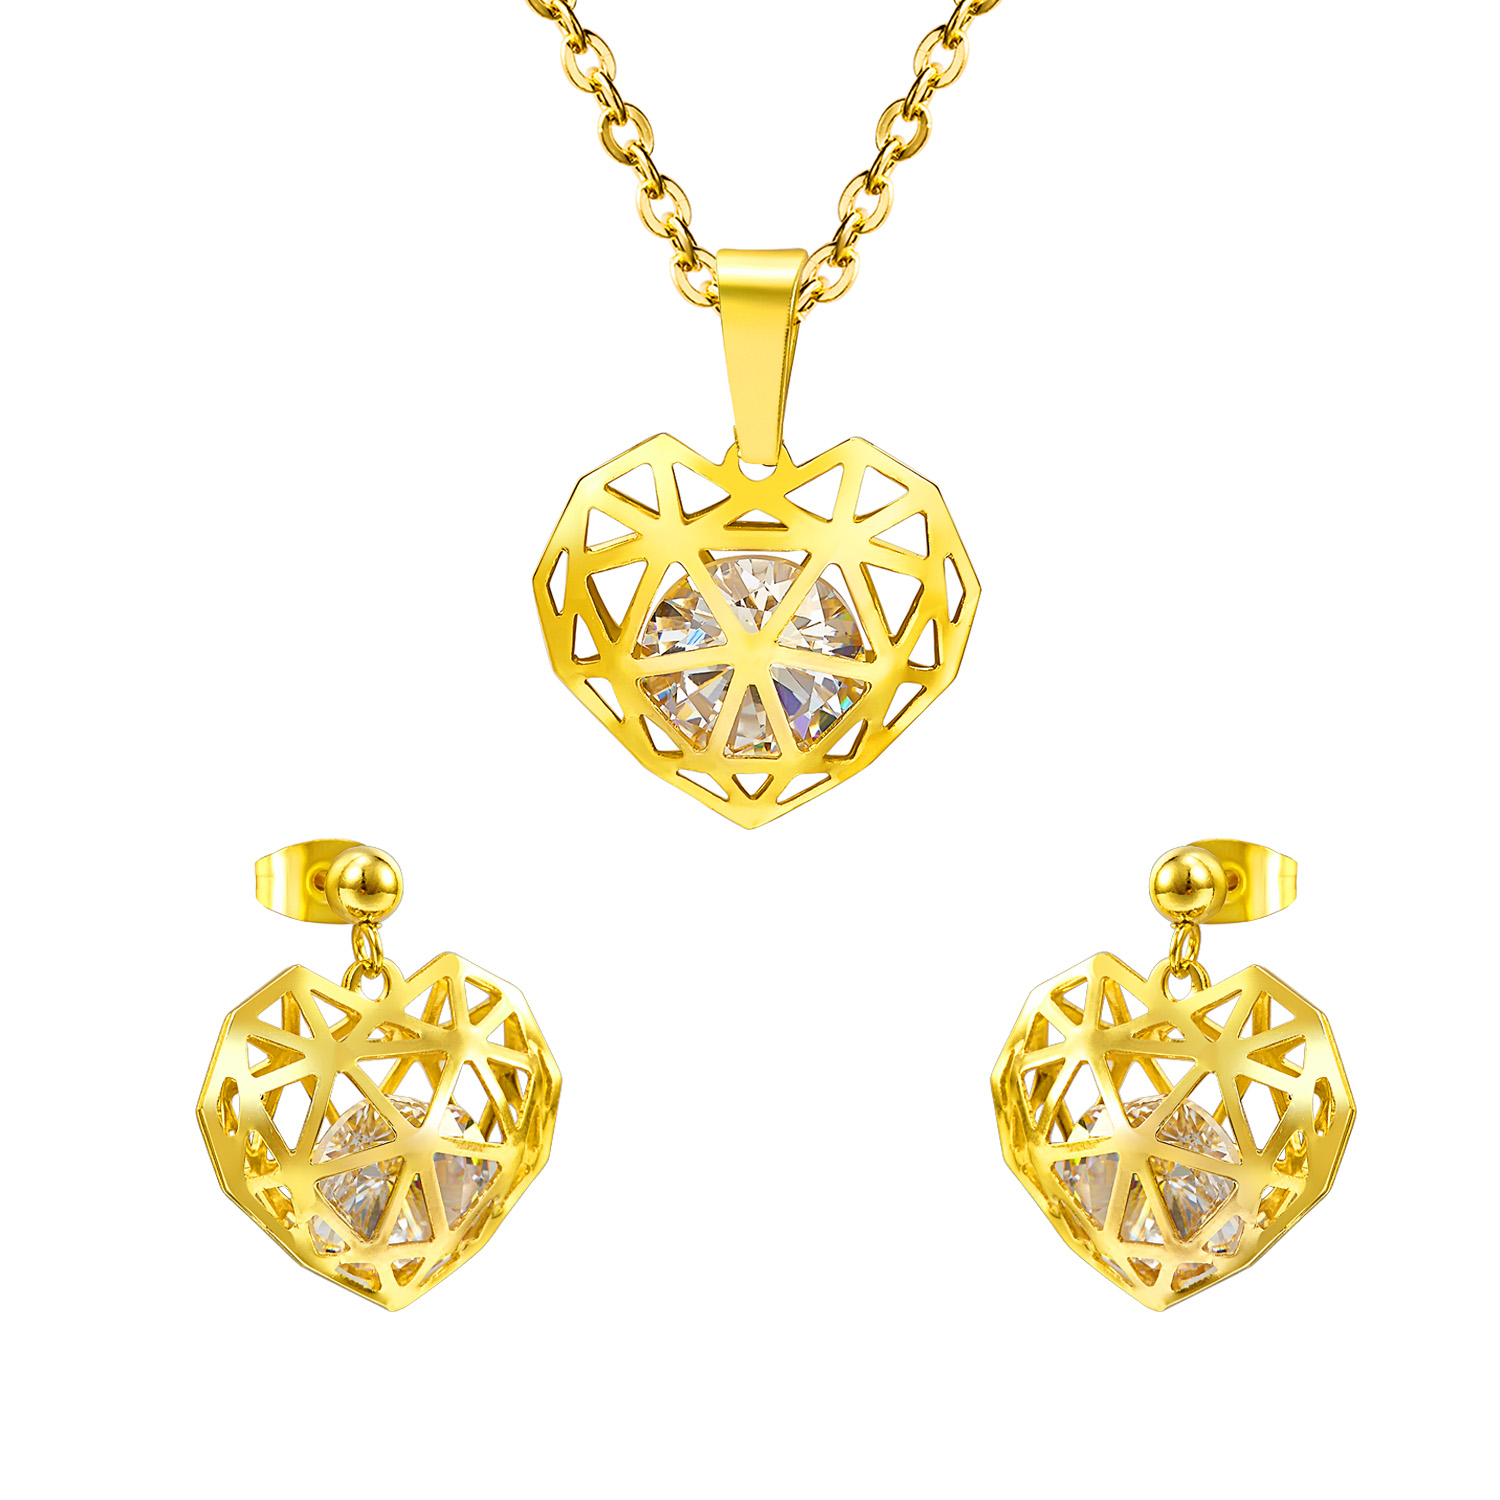 2018 LUXUSTEEL Hot Selling Hollow Out Heart Shaped Pendant CZ